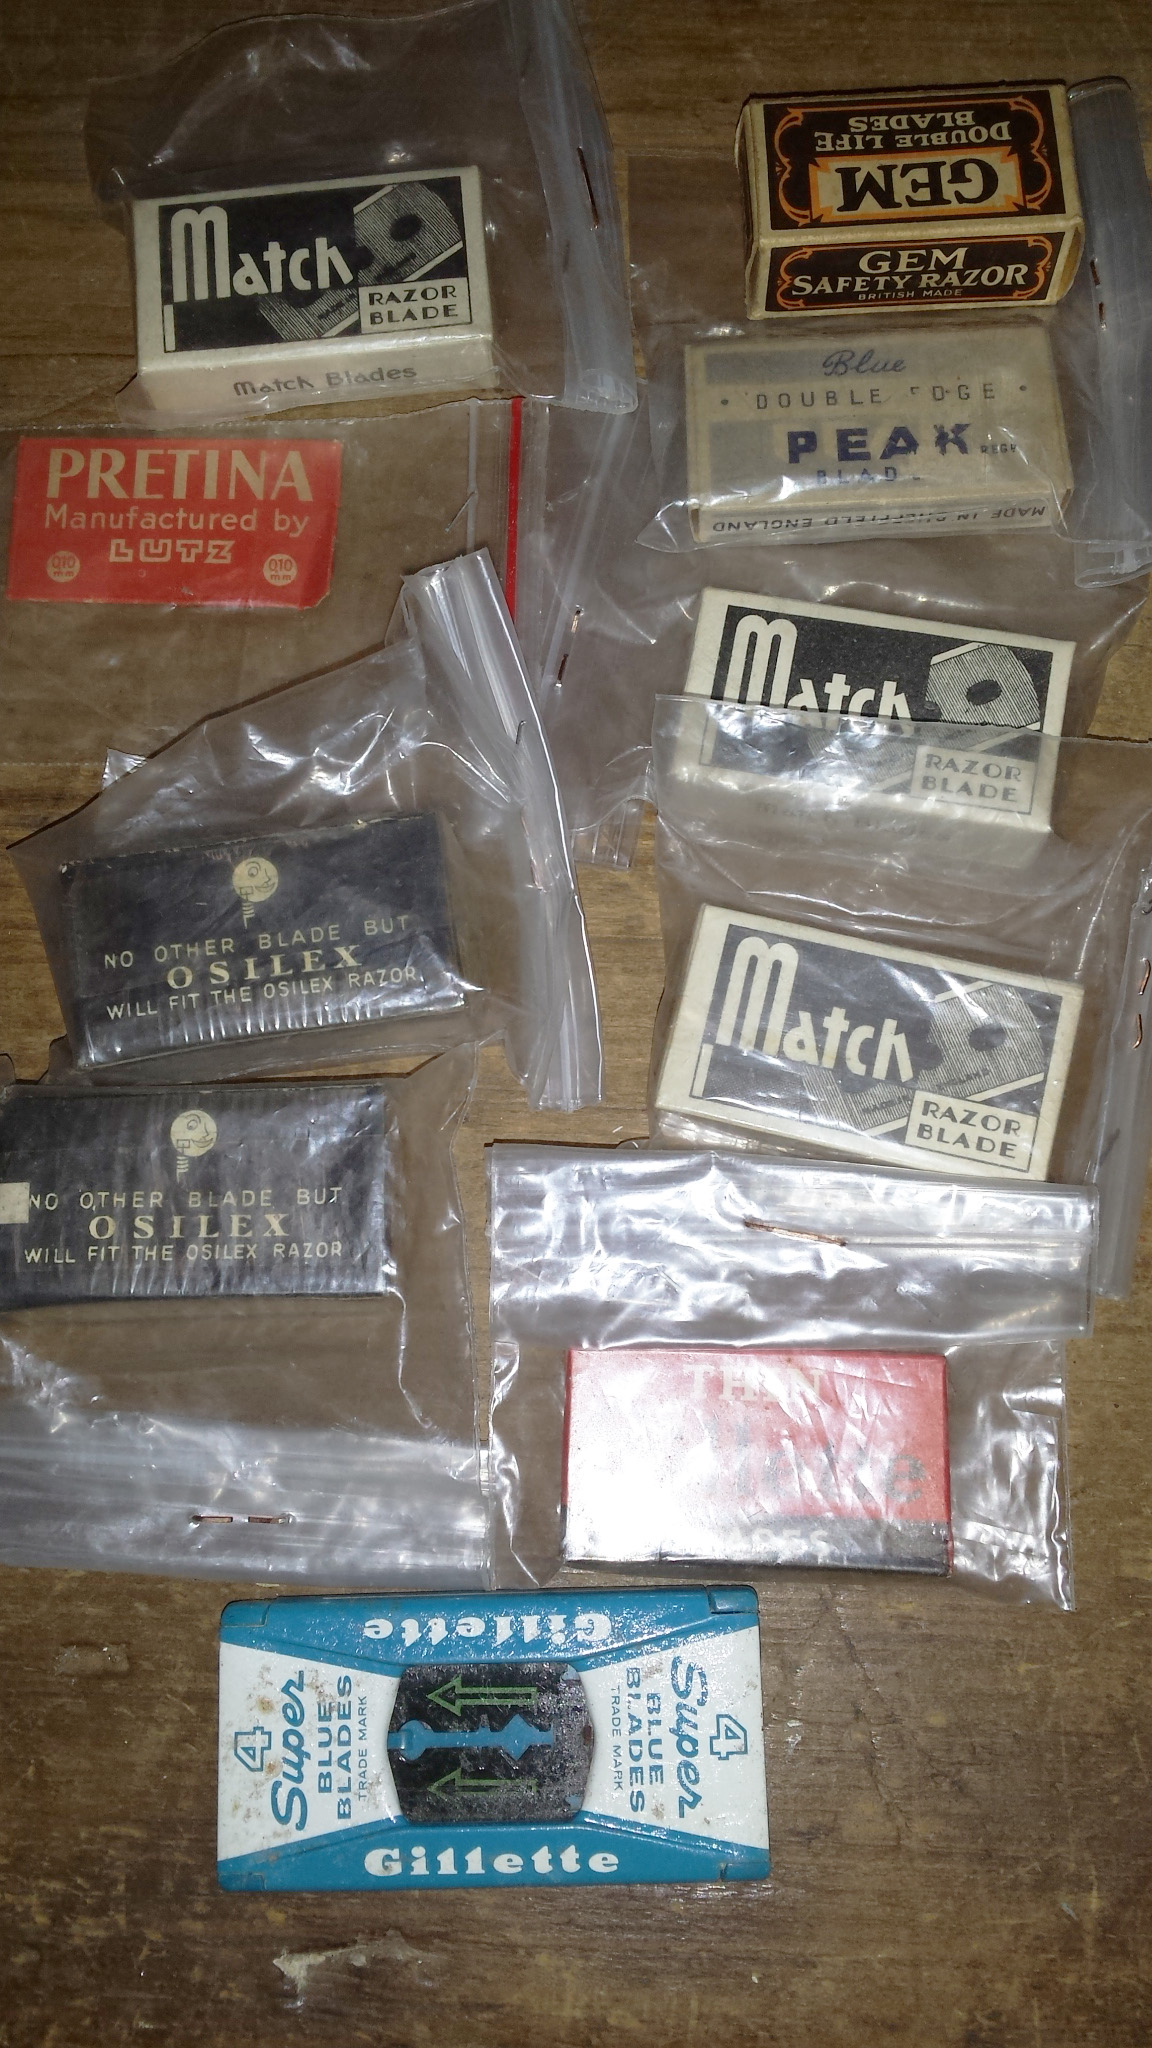 Vintage packets of Razor Blades for sale at HEATHS OLD WARES COLLECTABLES AND INDUSTRIAL ANTIQUES Heaths Old Wares, collectables and industrial antiques, 19-21 Broadway Burringbar NSW 2483 Open 7 days Ph: 0266771181